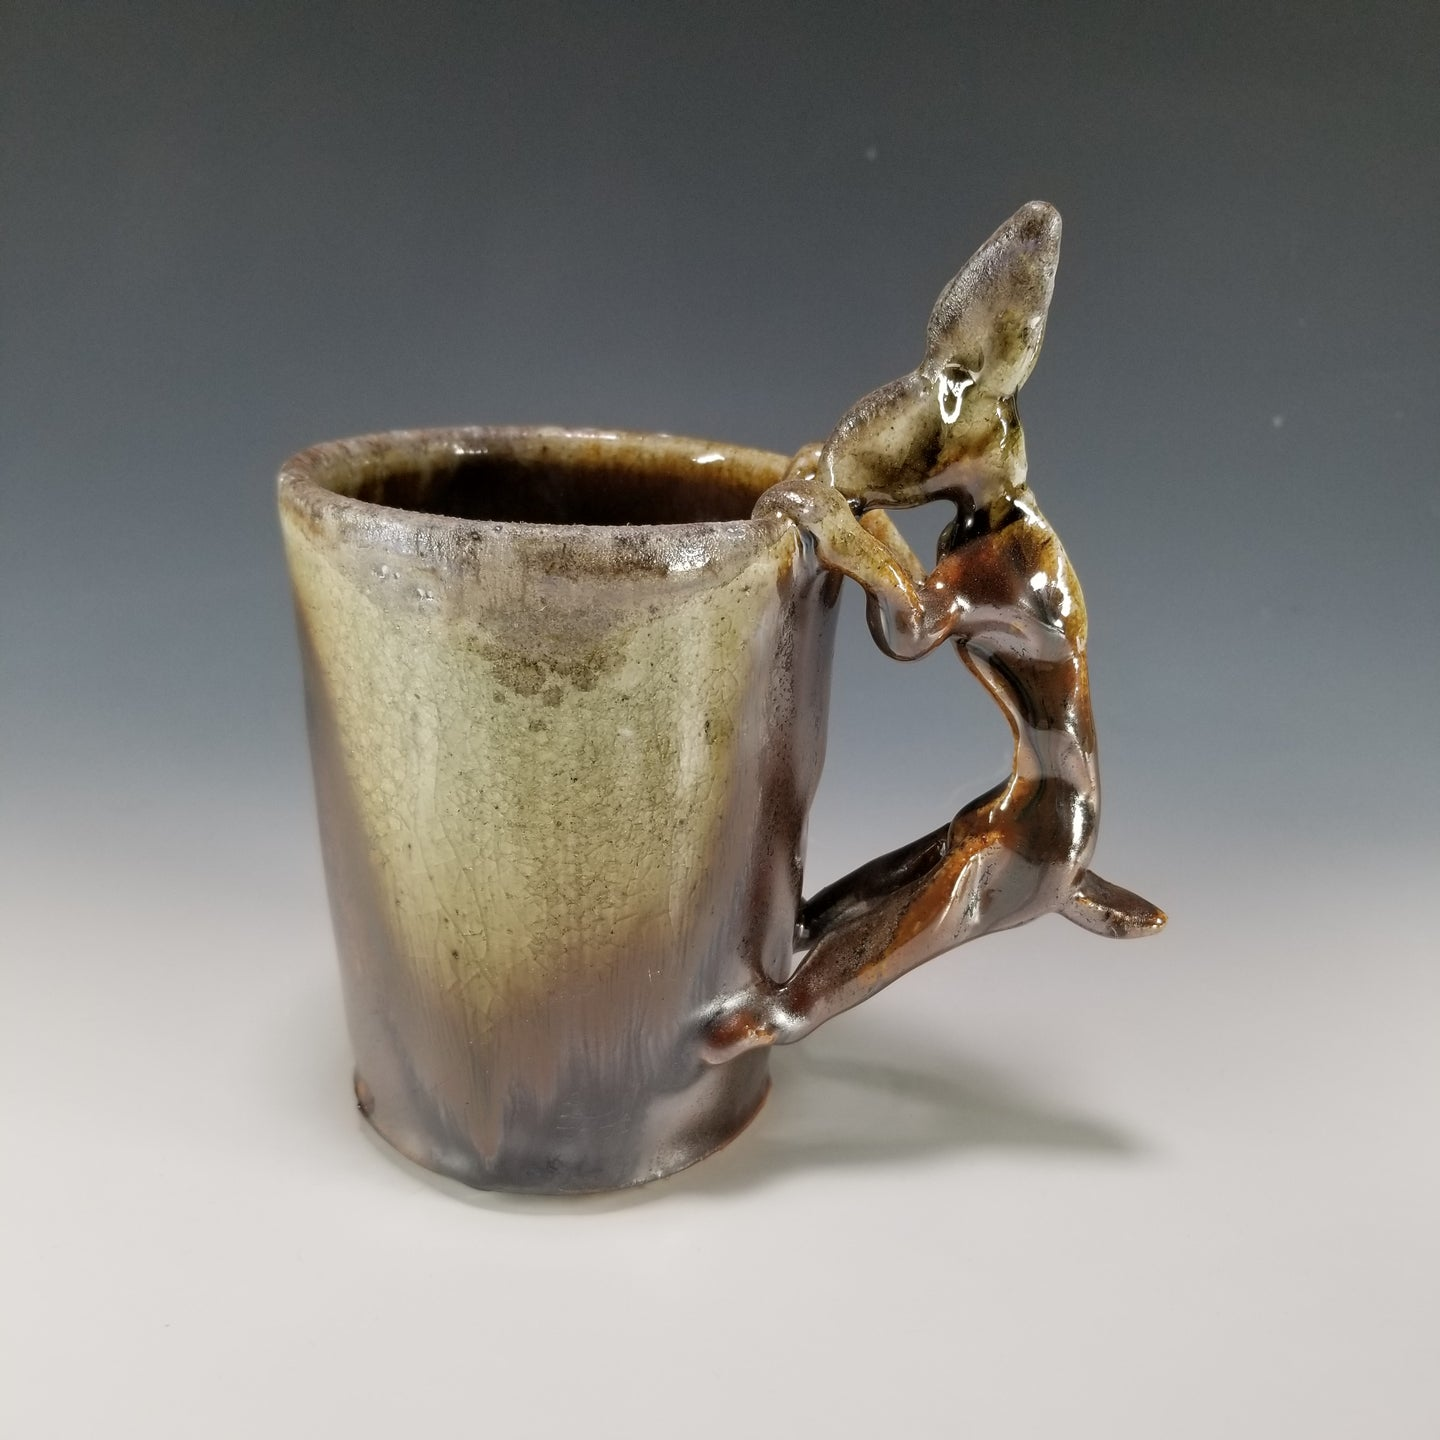 Wood Fired Rabbit Mug